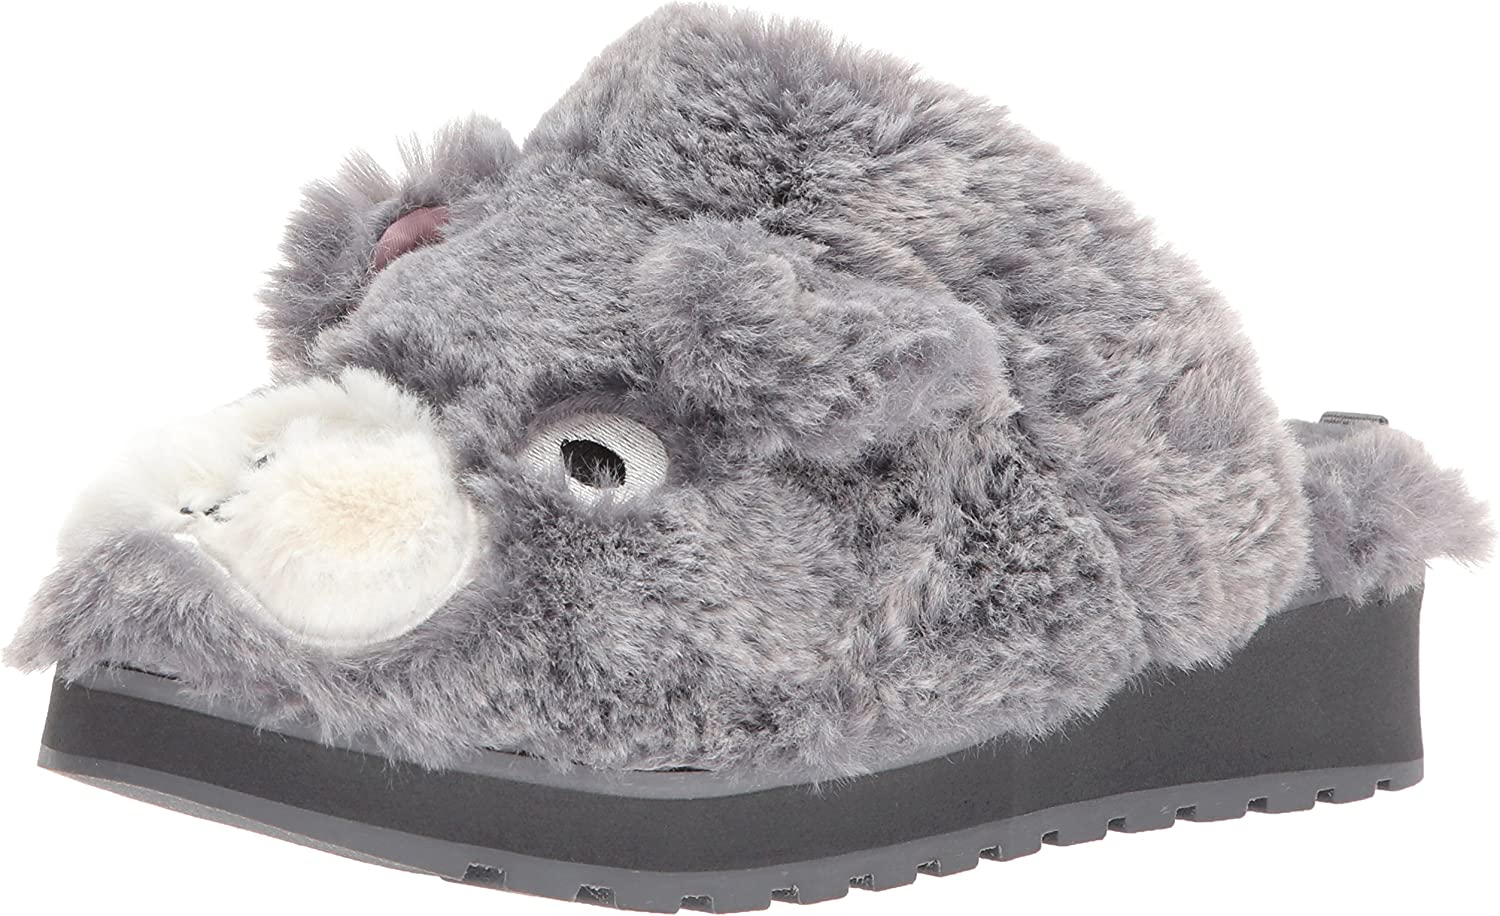 Skechers Womens Keepsakes High - Pawfection Clog